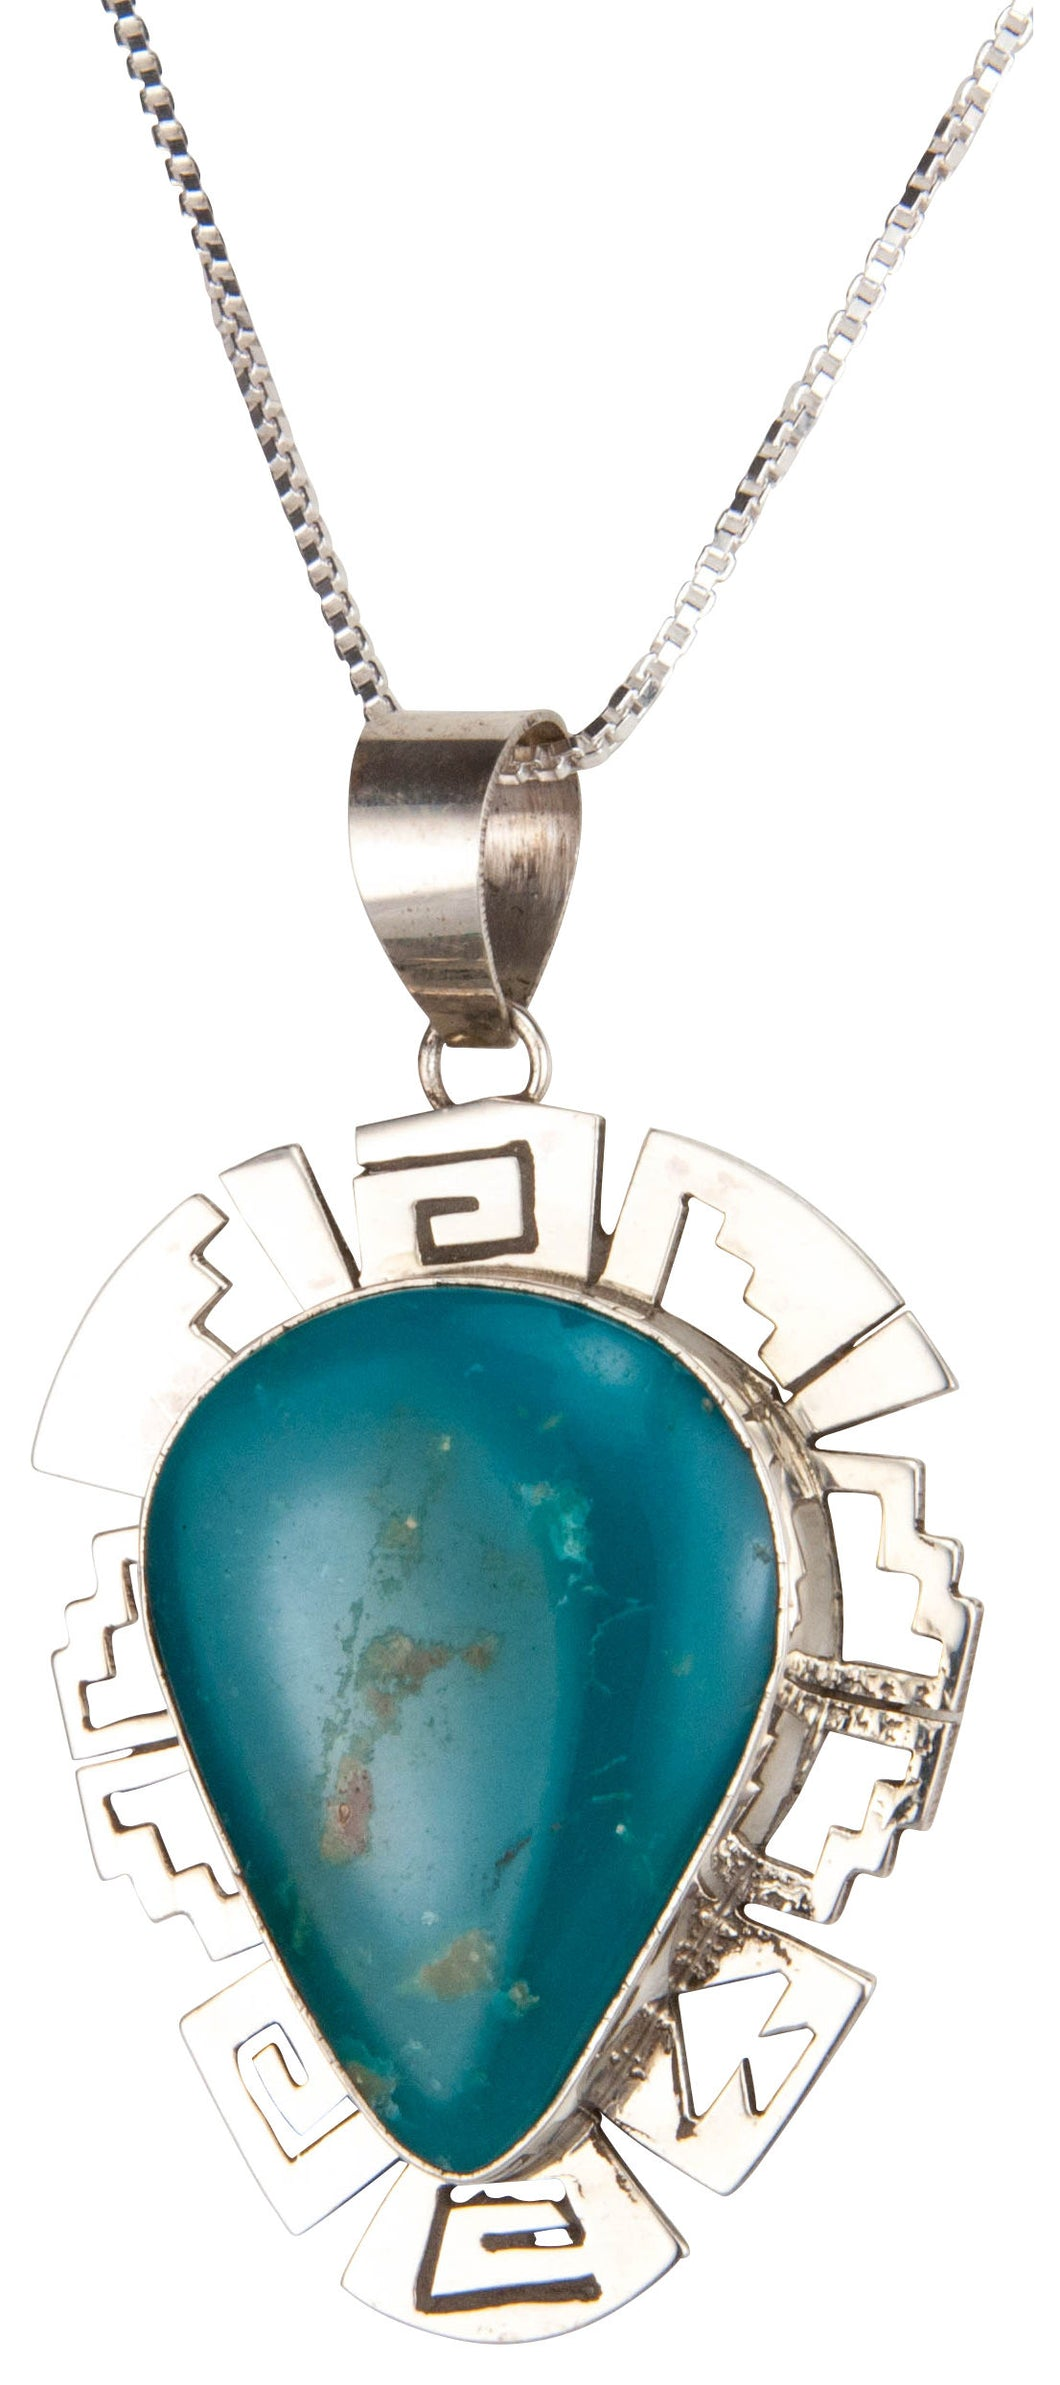 Navajo Native American Kingman Turquoise Pendant Necklace by Skeets SKU229889